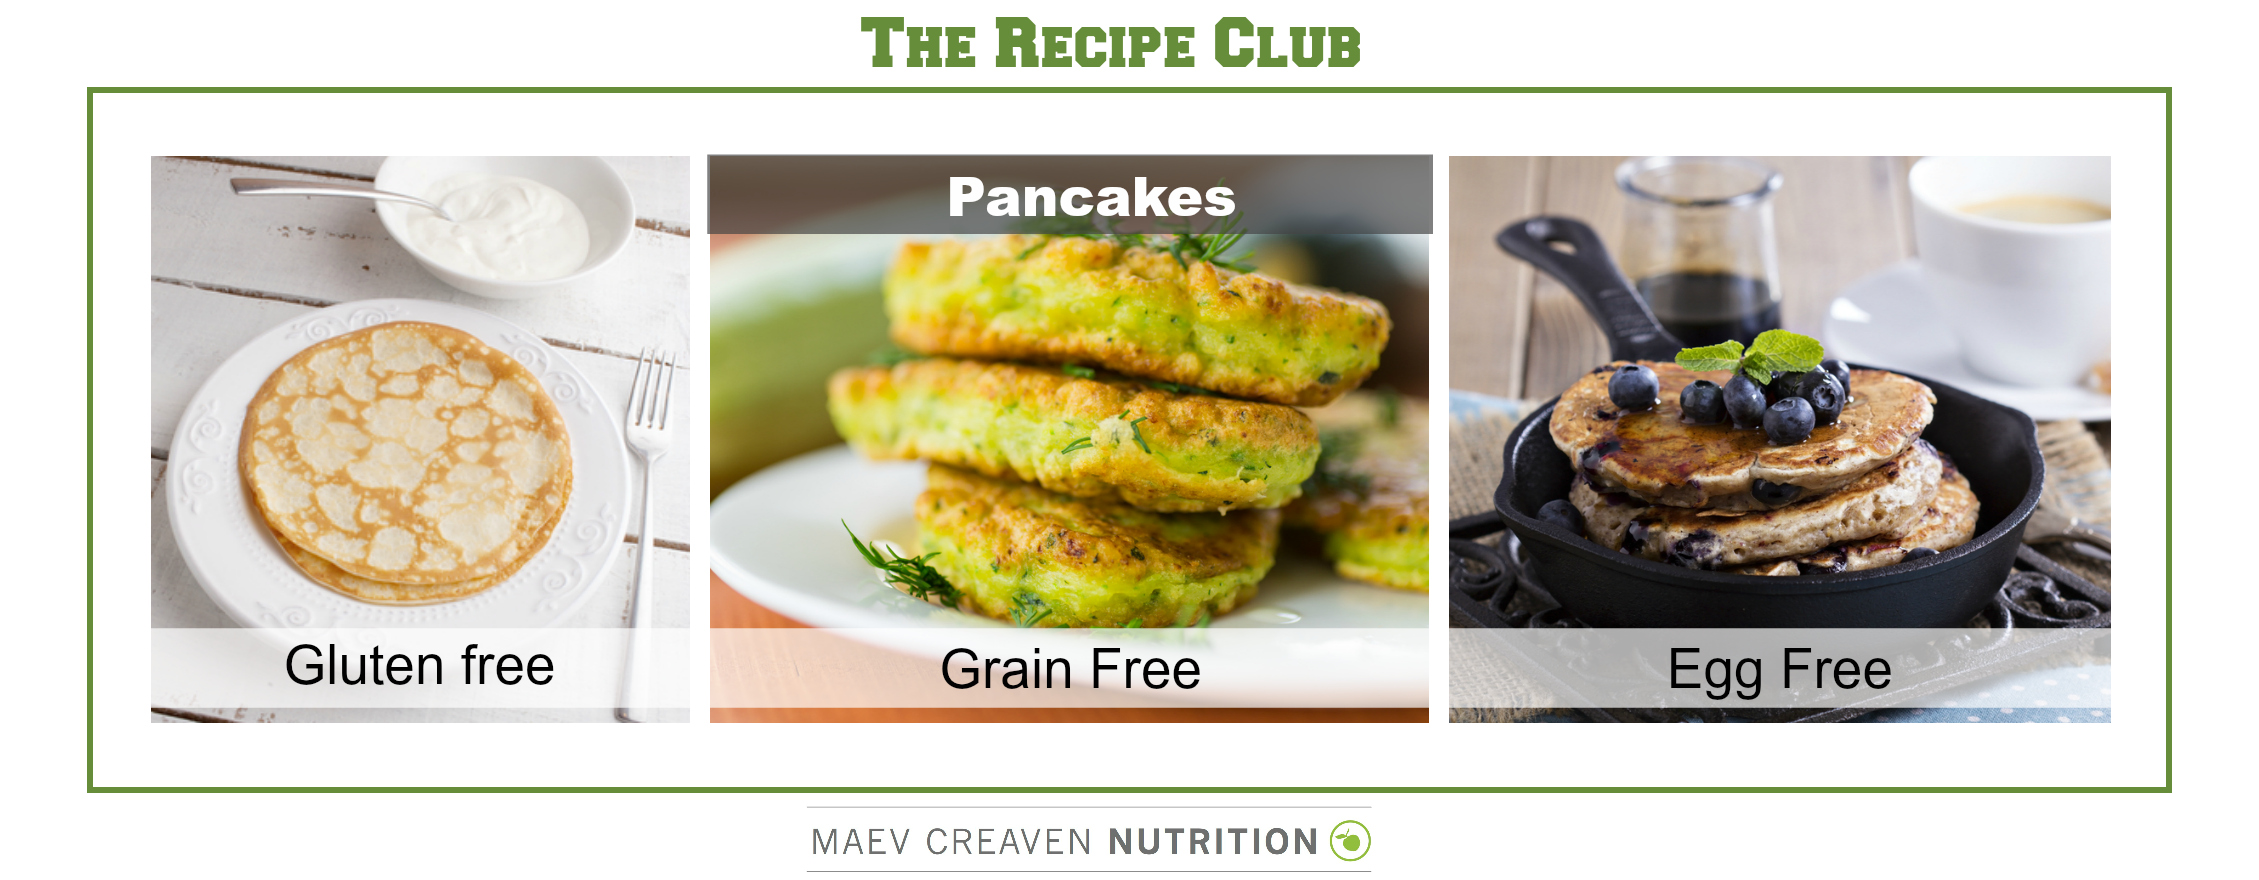 The Recipe Club Pancakes